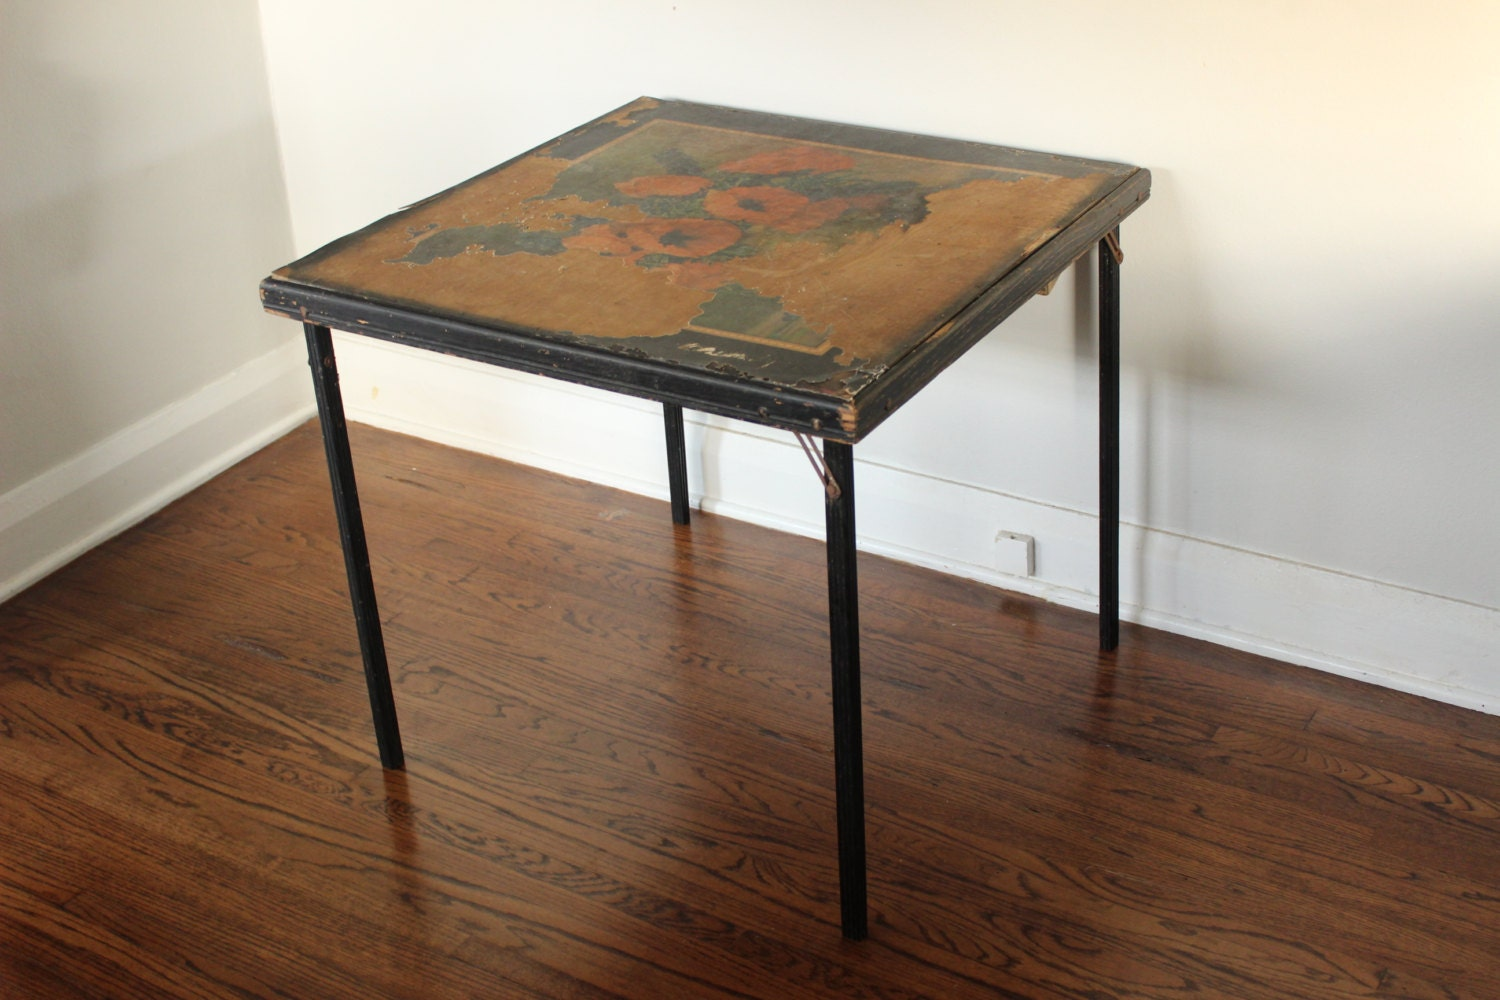 Beautifully Aged Vintage Wood Folding Card Table With Flowers. Industrial Pool Table Light. Under Desk Footrest. Extendable Table. Rustic Knobs And Drawer Pulls. Childrens Desk Ikea. Navy Table Runners. Table Linen Wholesale. Desk Chair Comfortable